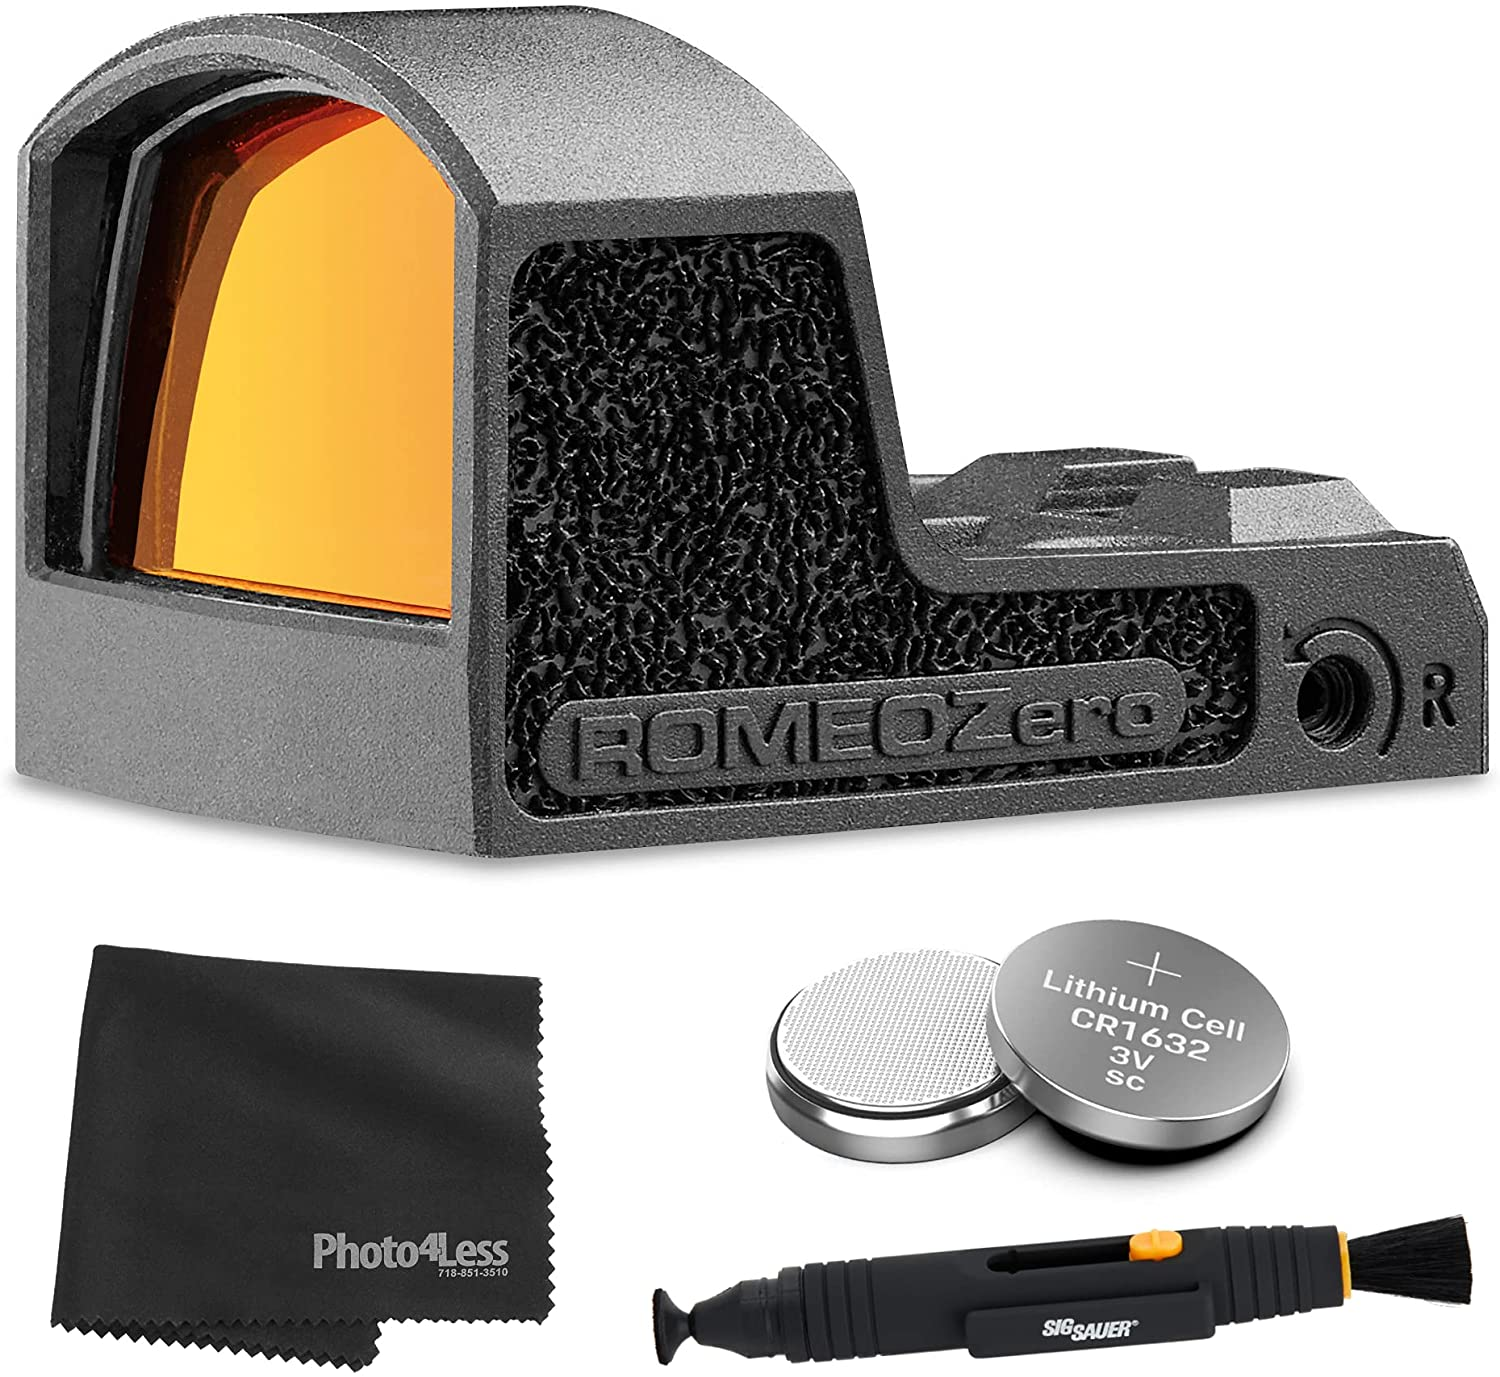 Sig Sauer Romeo Zero 1X18mm 3 MOA Reflex Red Dot Sight + Extra Batteries + Lens Cleaning Kit : Sports & Outdoors